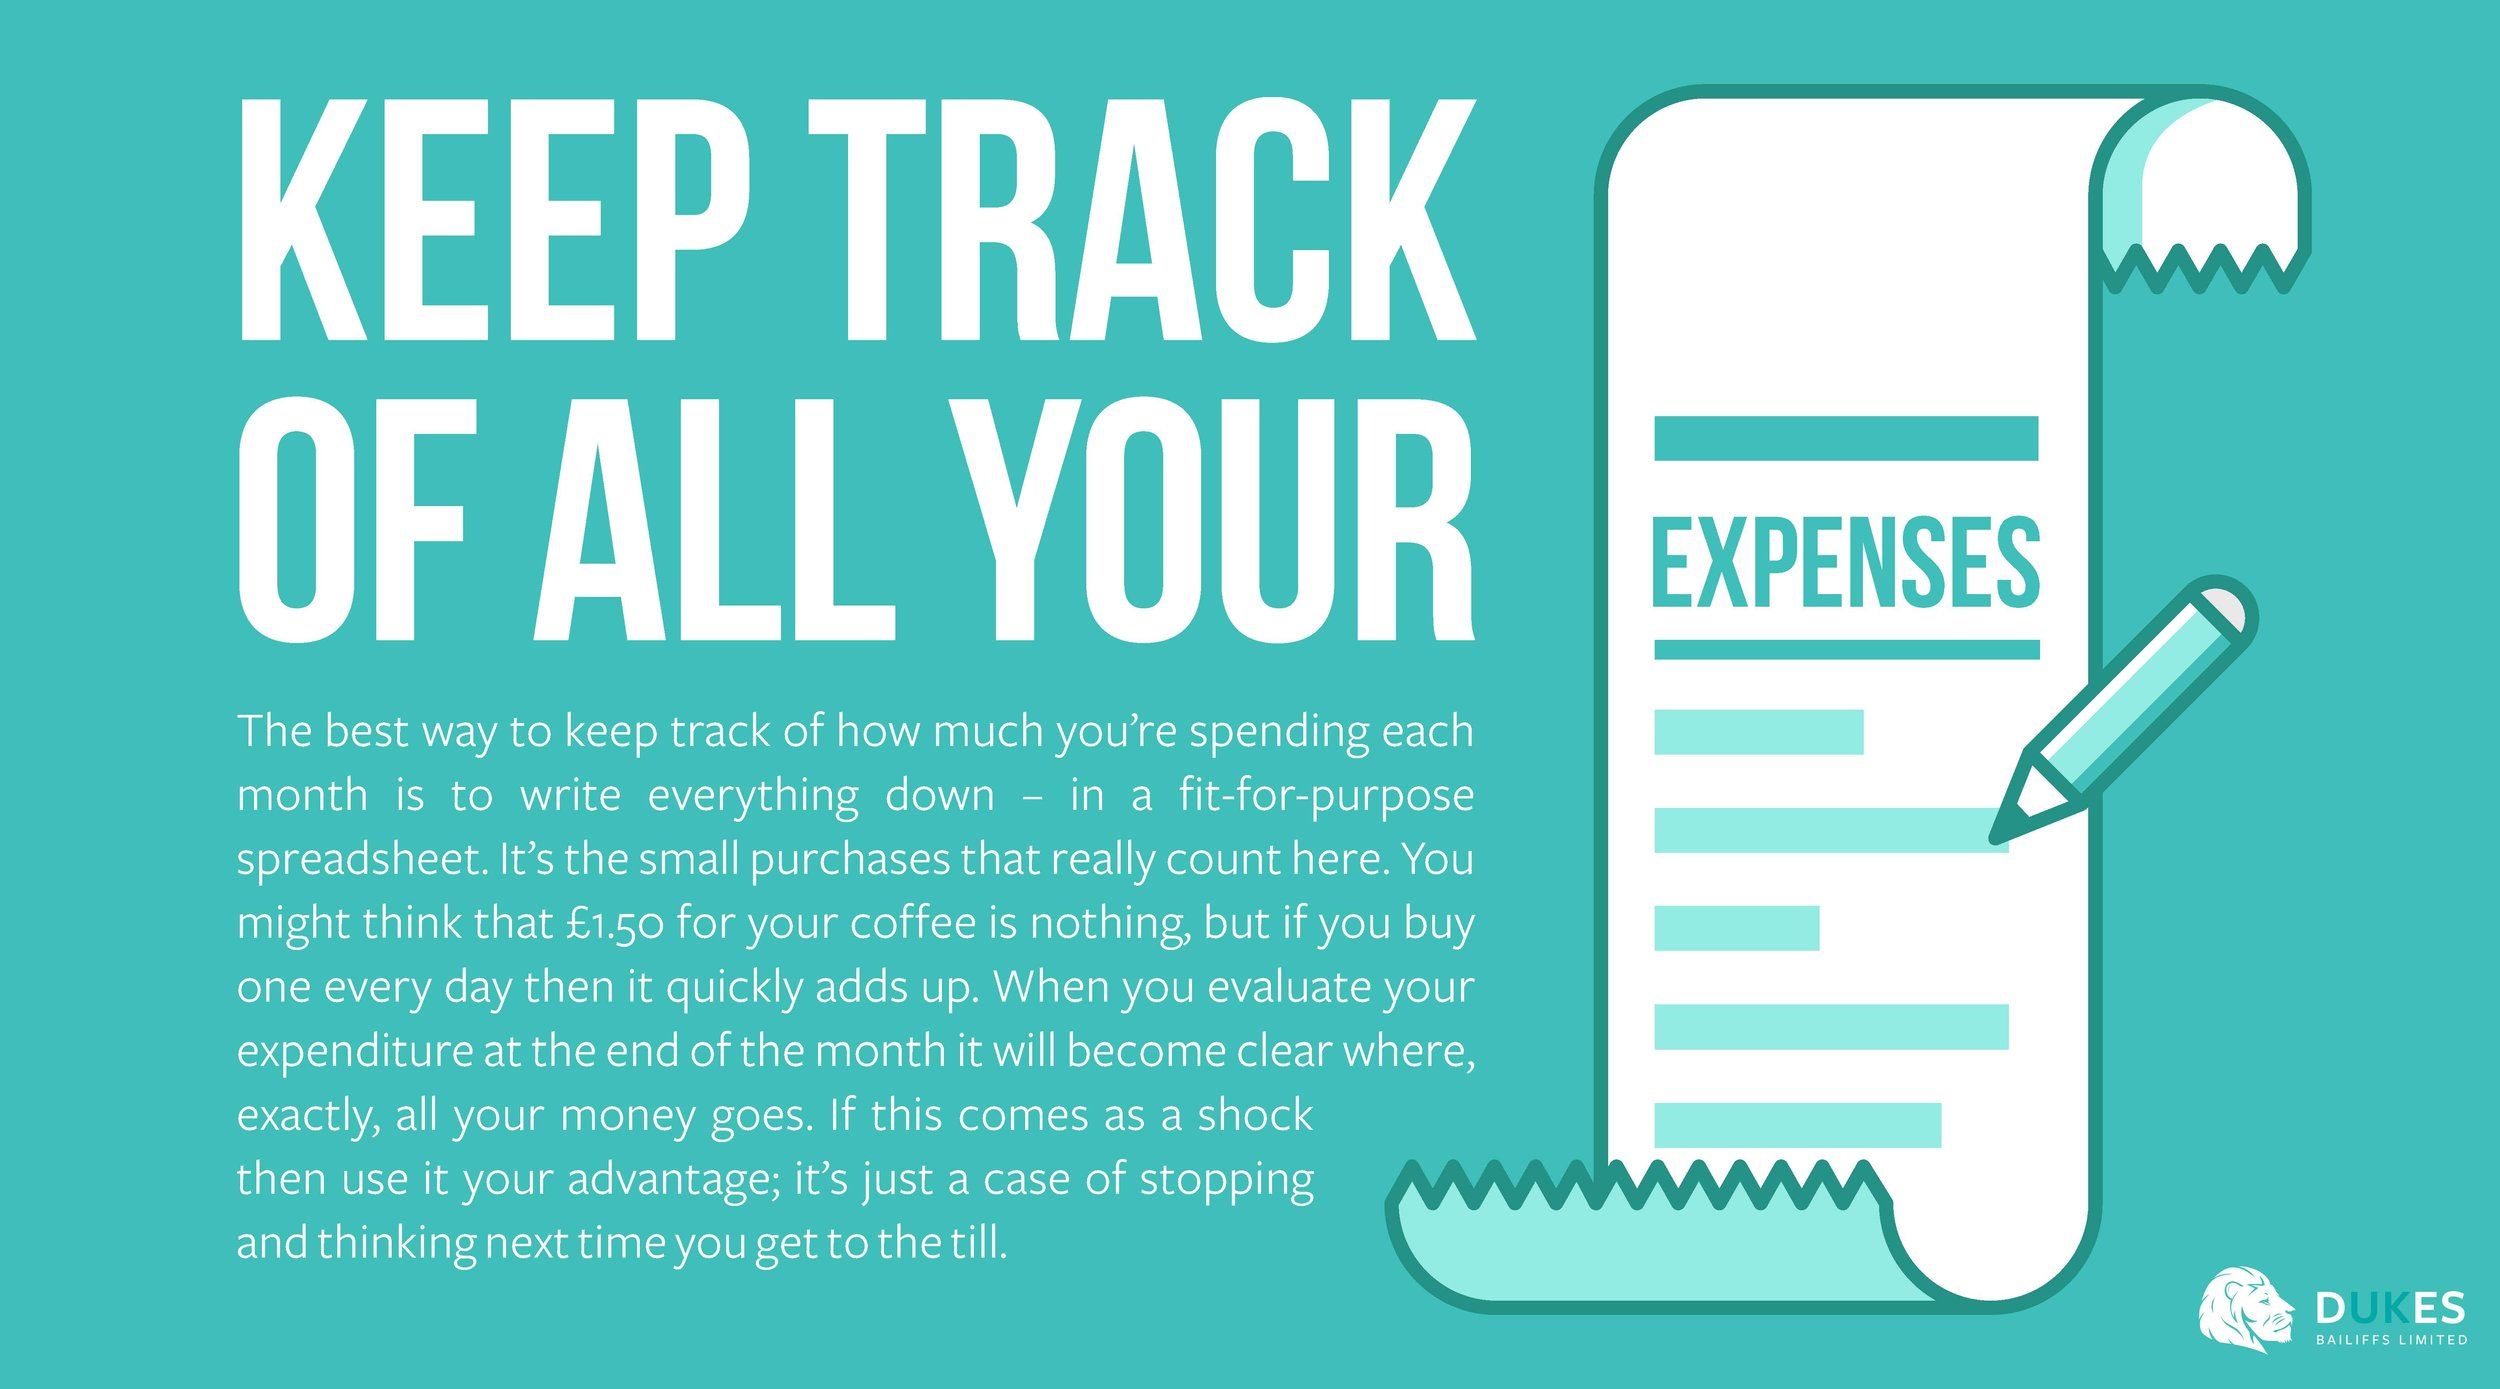 1. Keep Track of all your expenses - Dukes.jpg